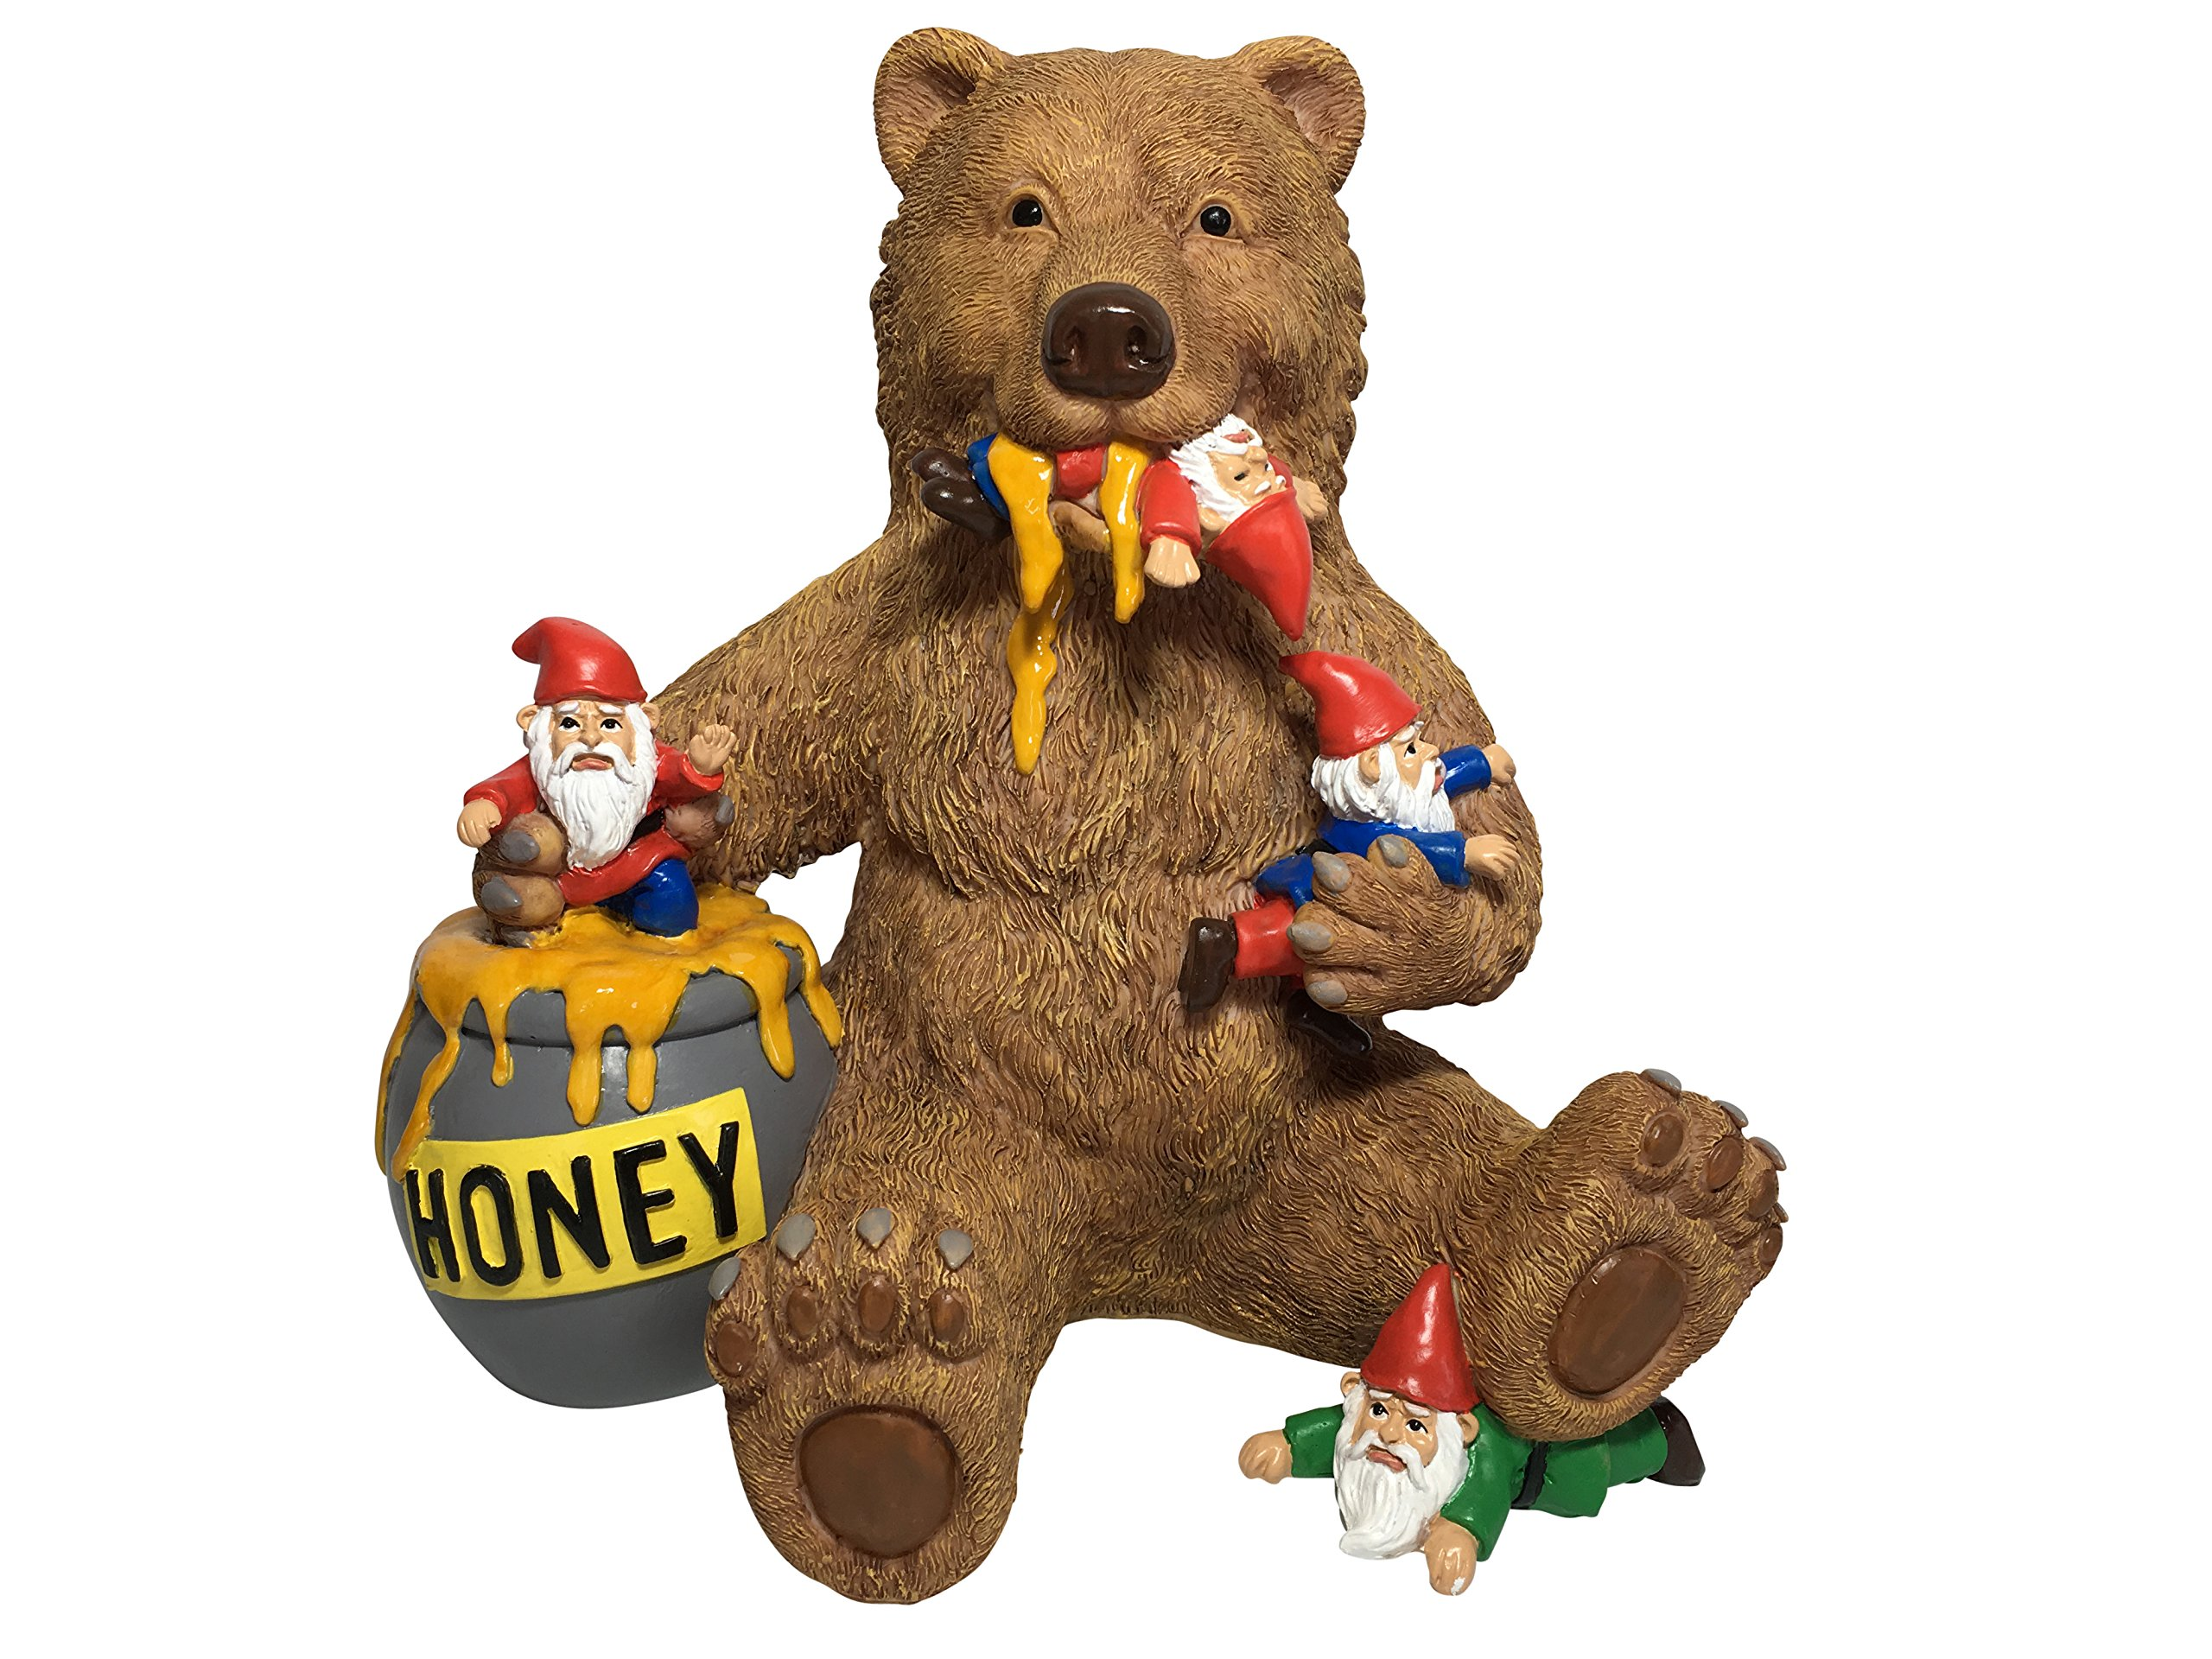 GlitZGlam Miniature Bear and Gnomes with Honey - A Garden Gnome Statue for your Fairy Garden